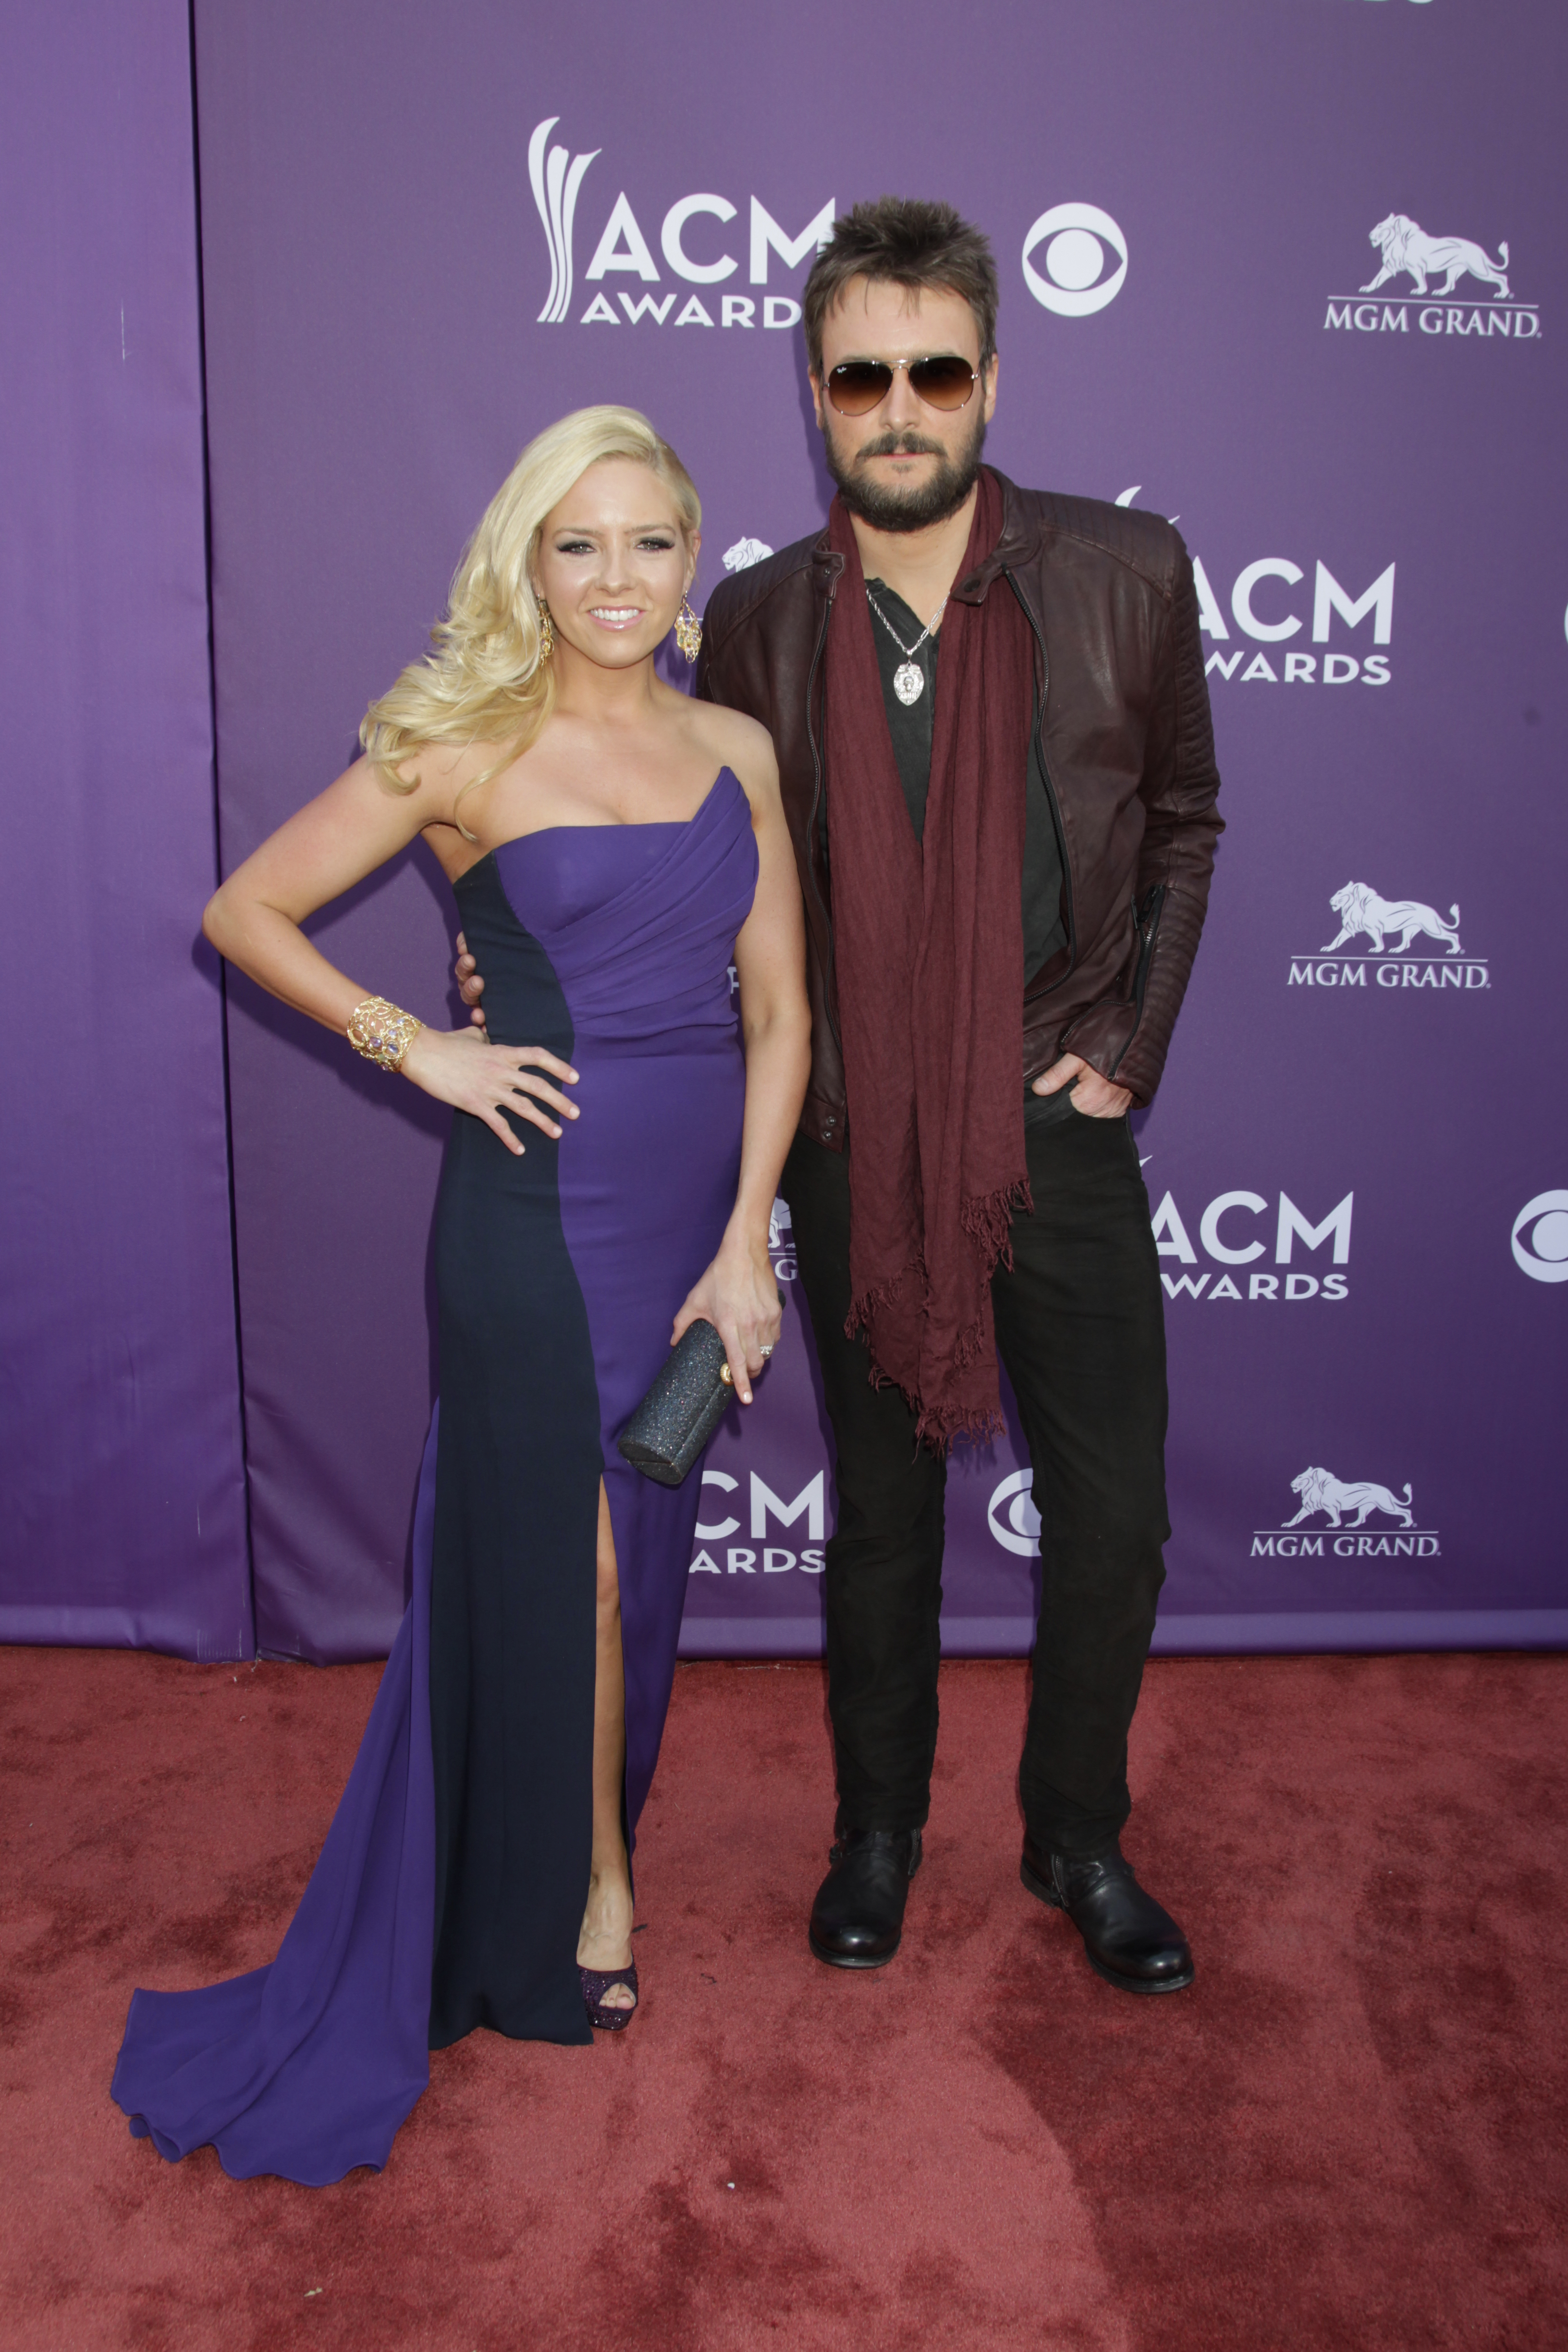 Eric Church on the Red Carpet - 48th ACM Awards